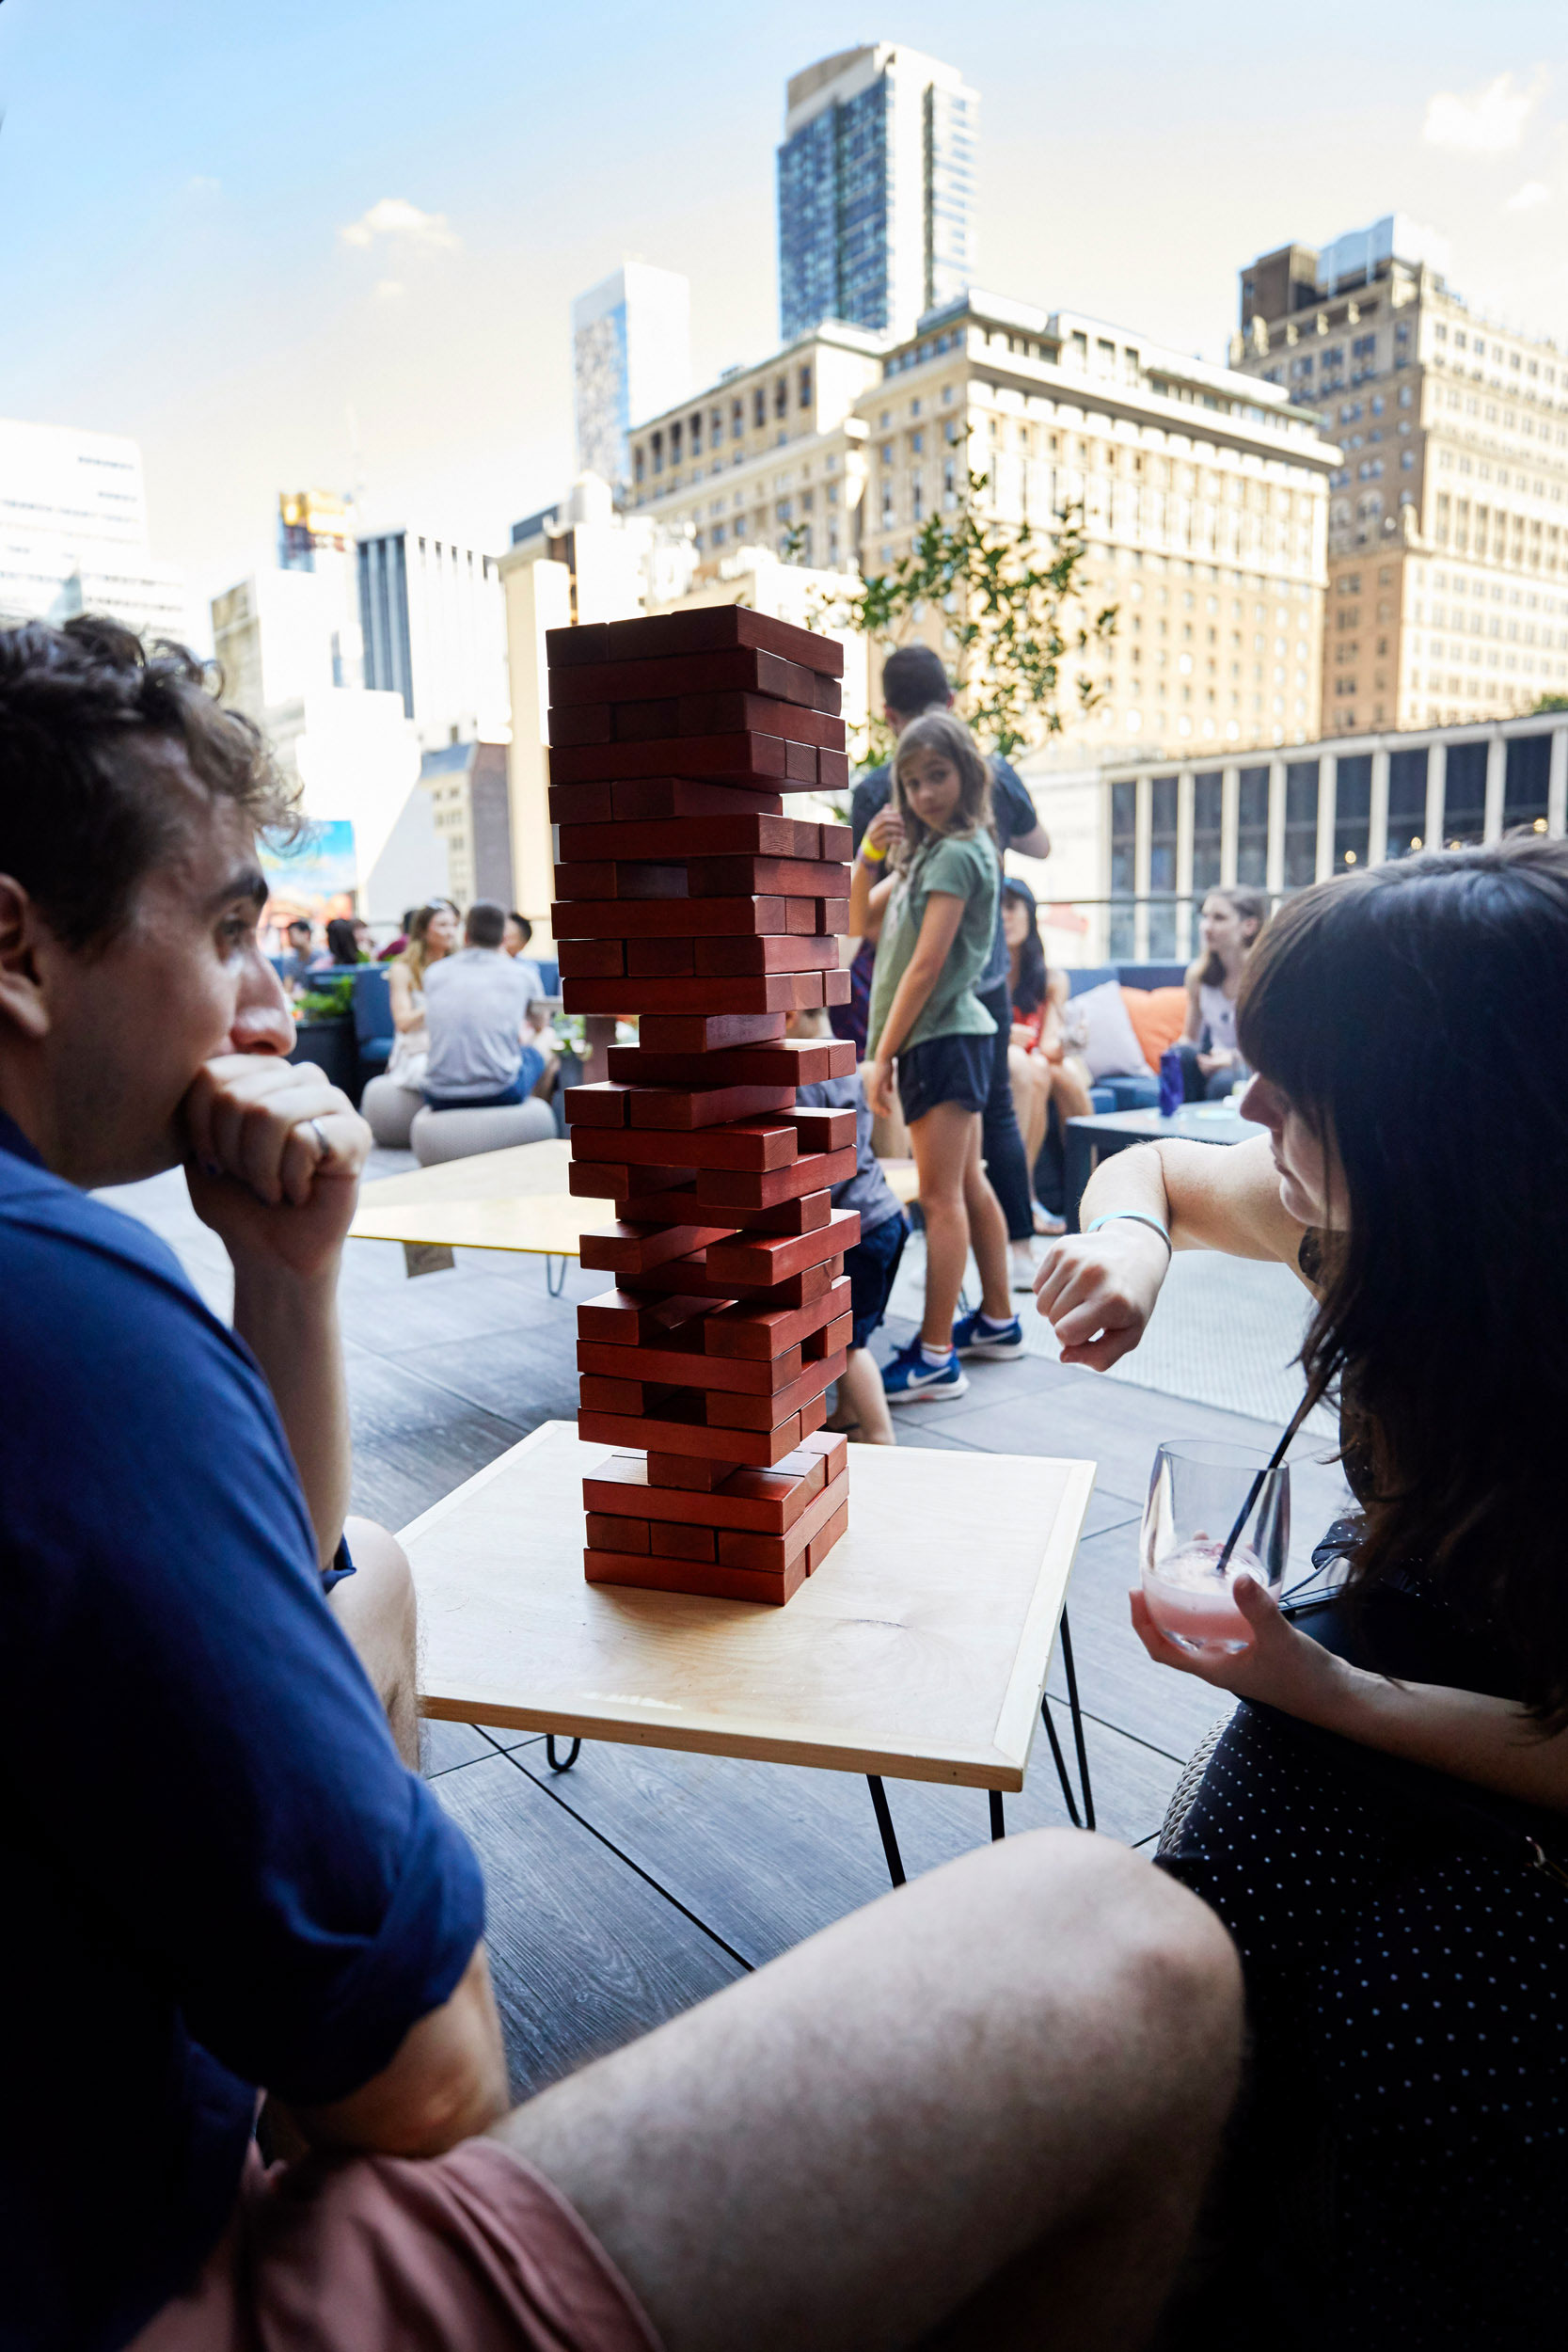 Squarespace-Summer-Party-2019-game-rentals-Versa-nyc.jpg